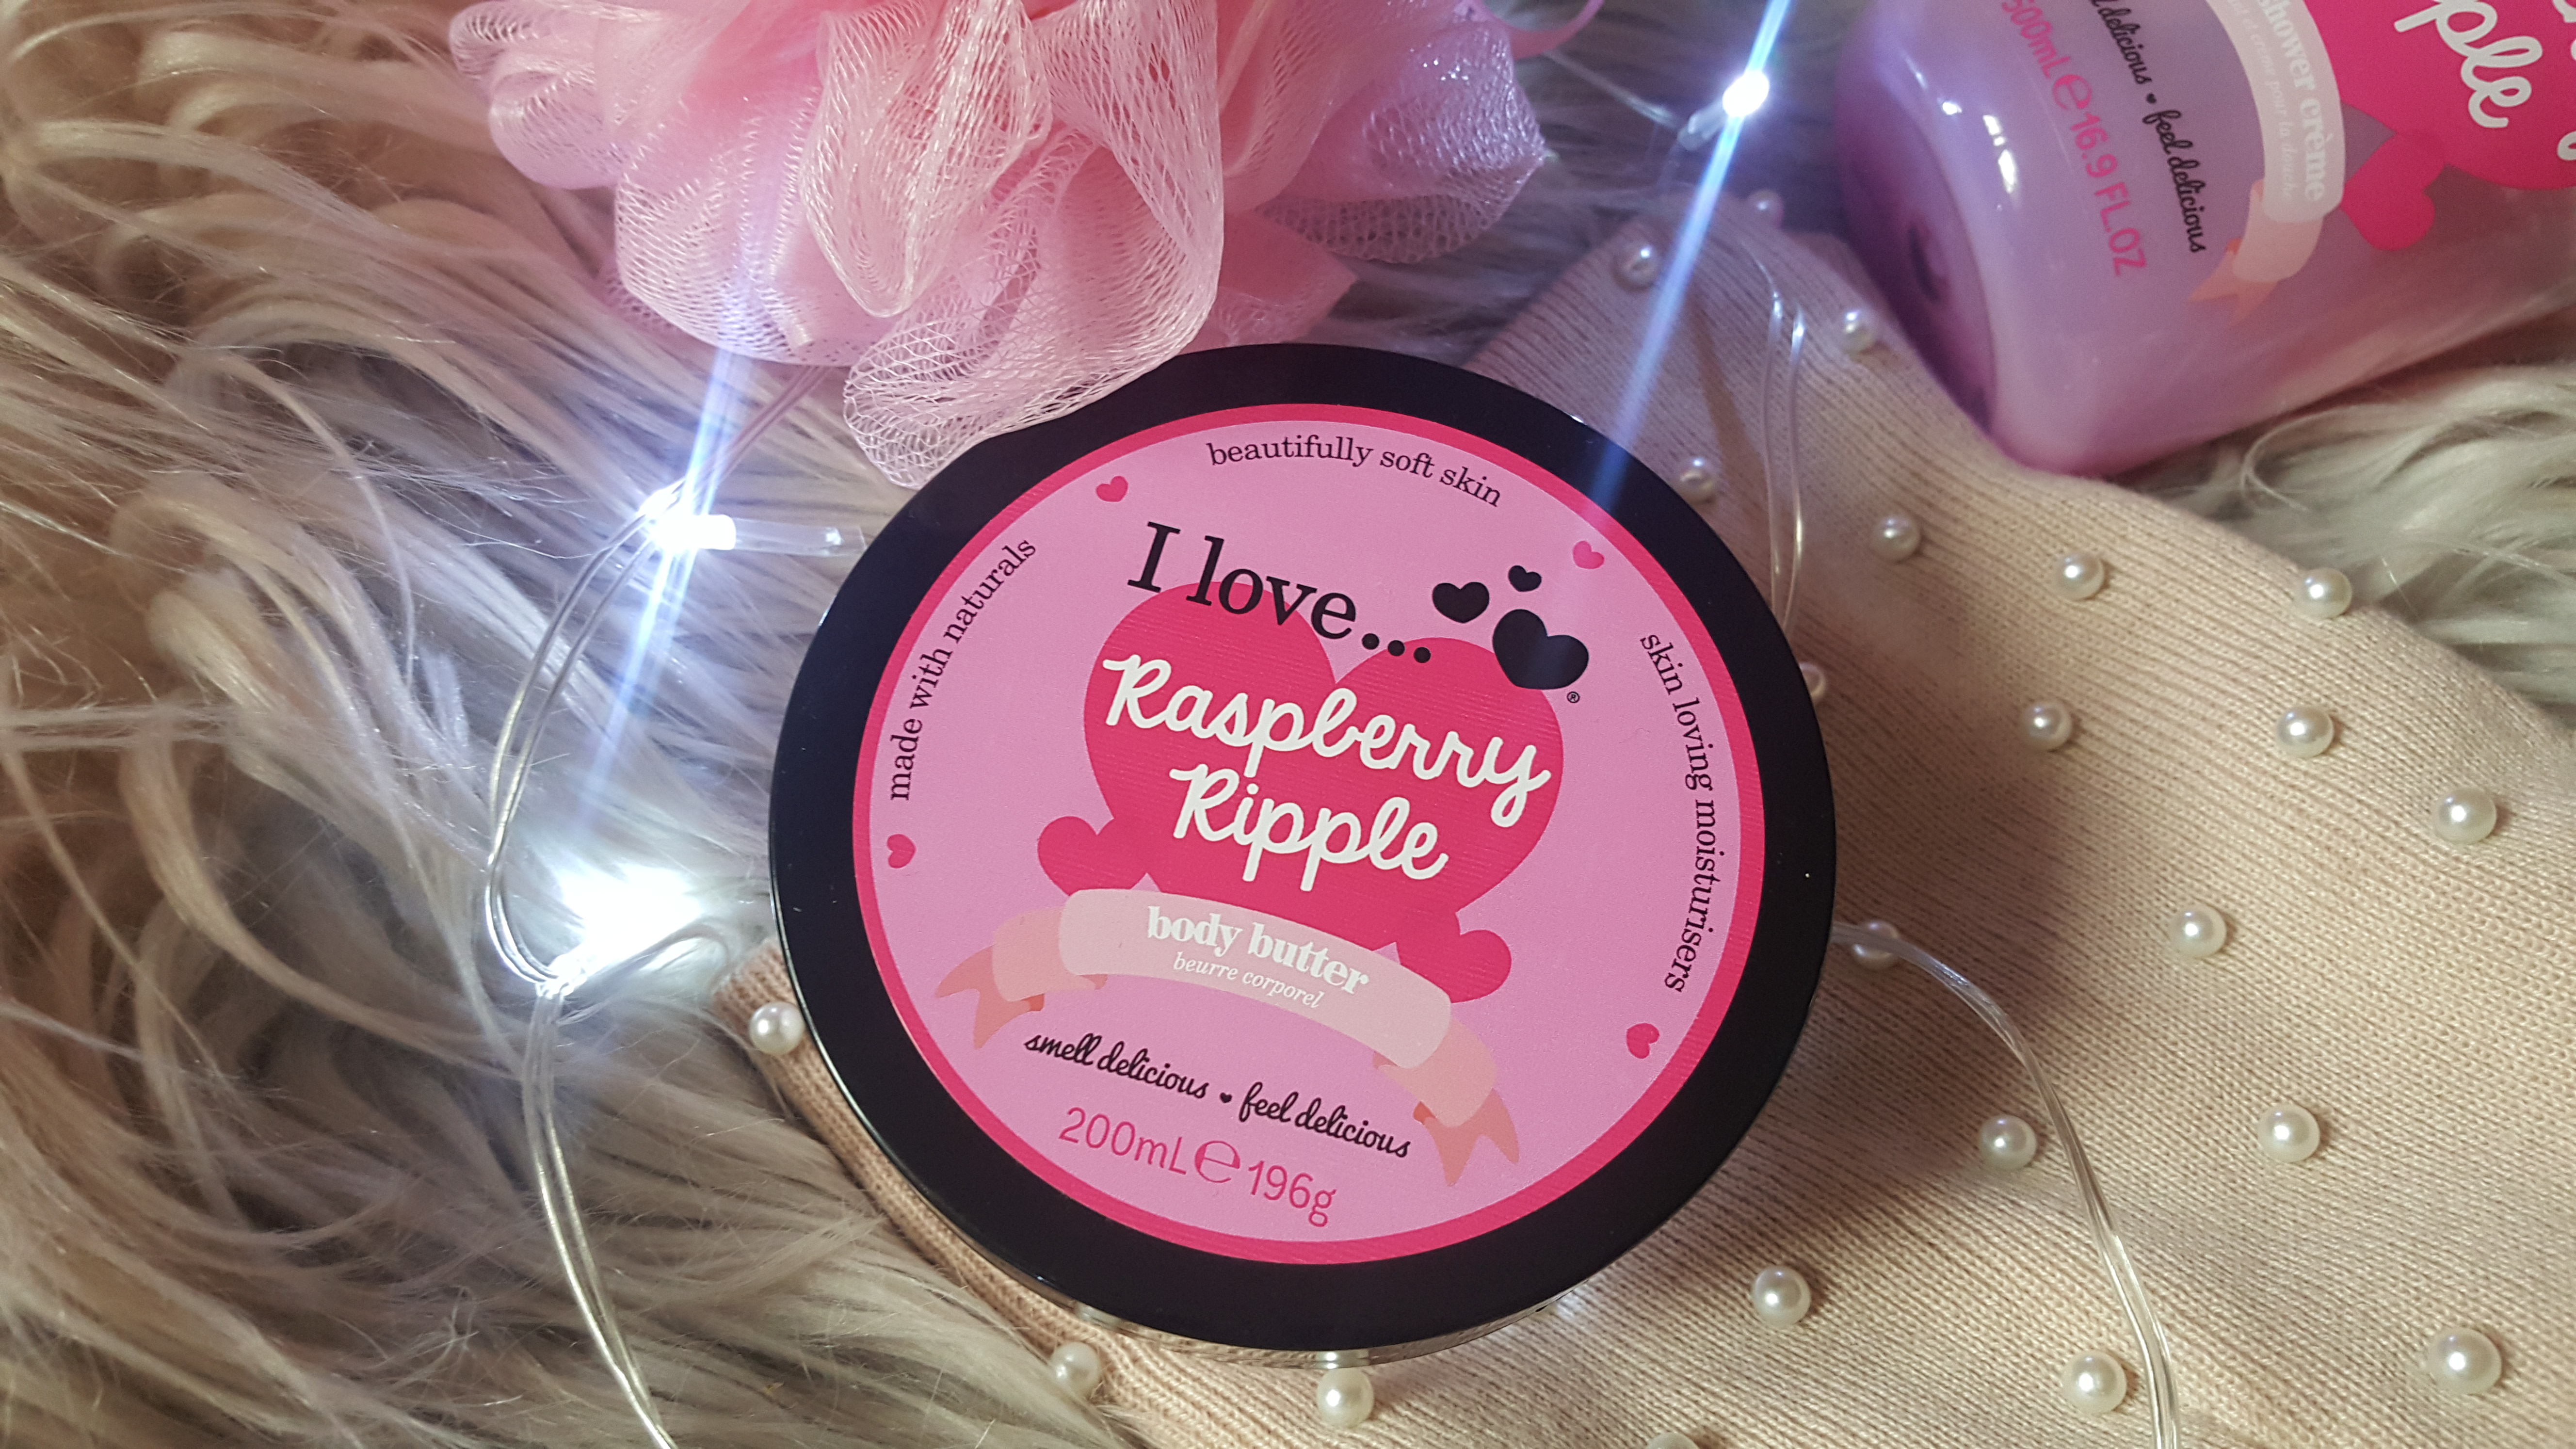 I love cosmetics Raspberry Ripple